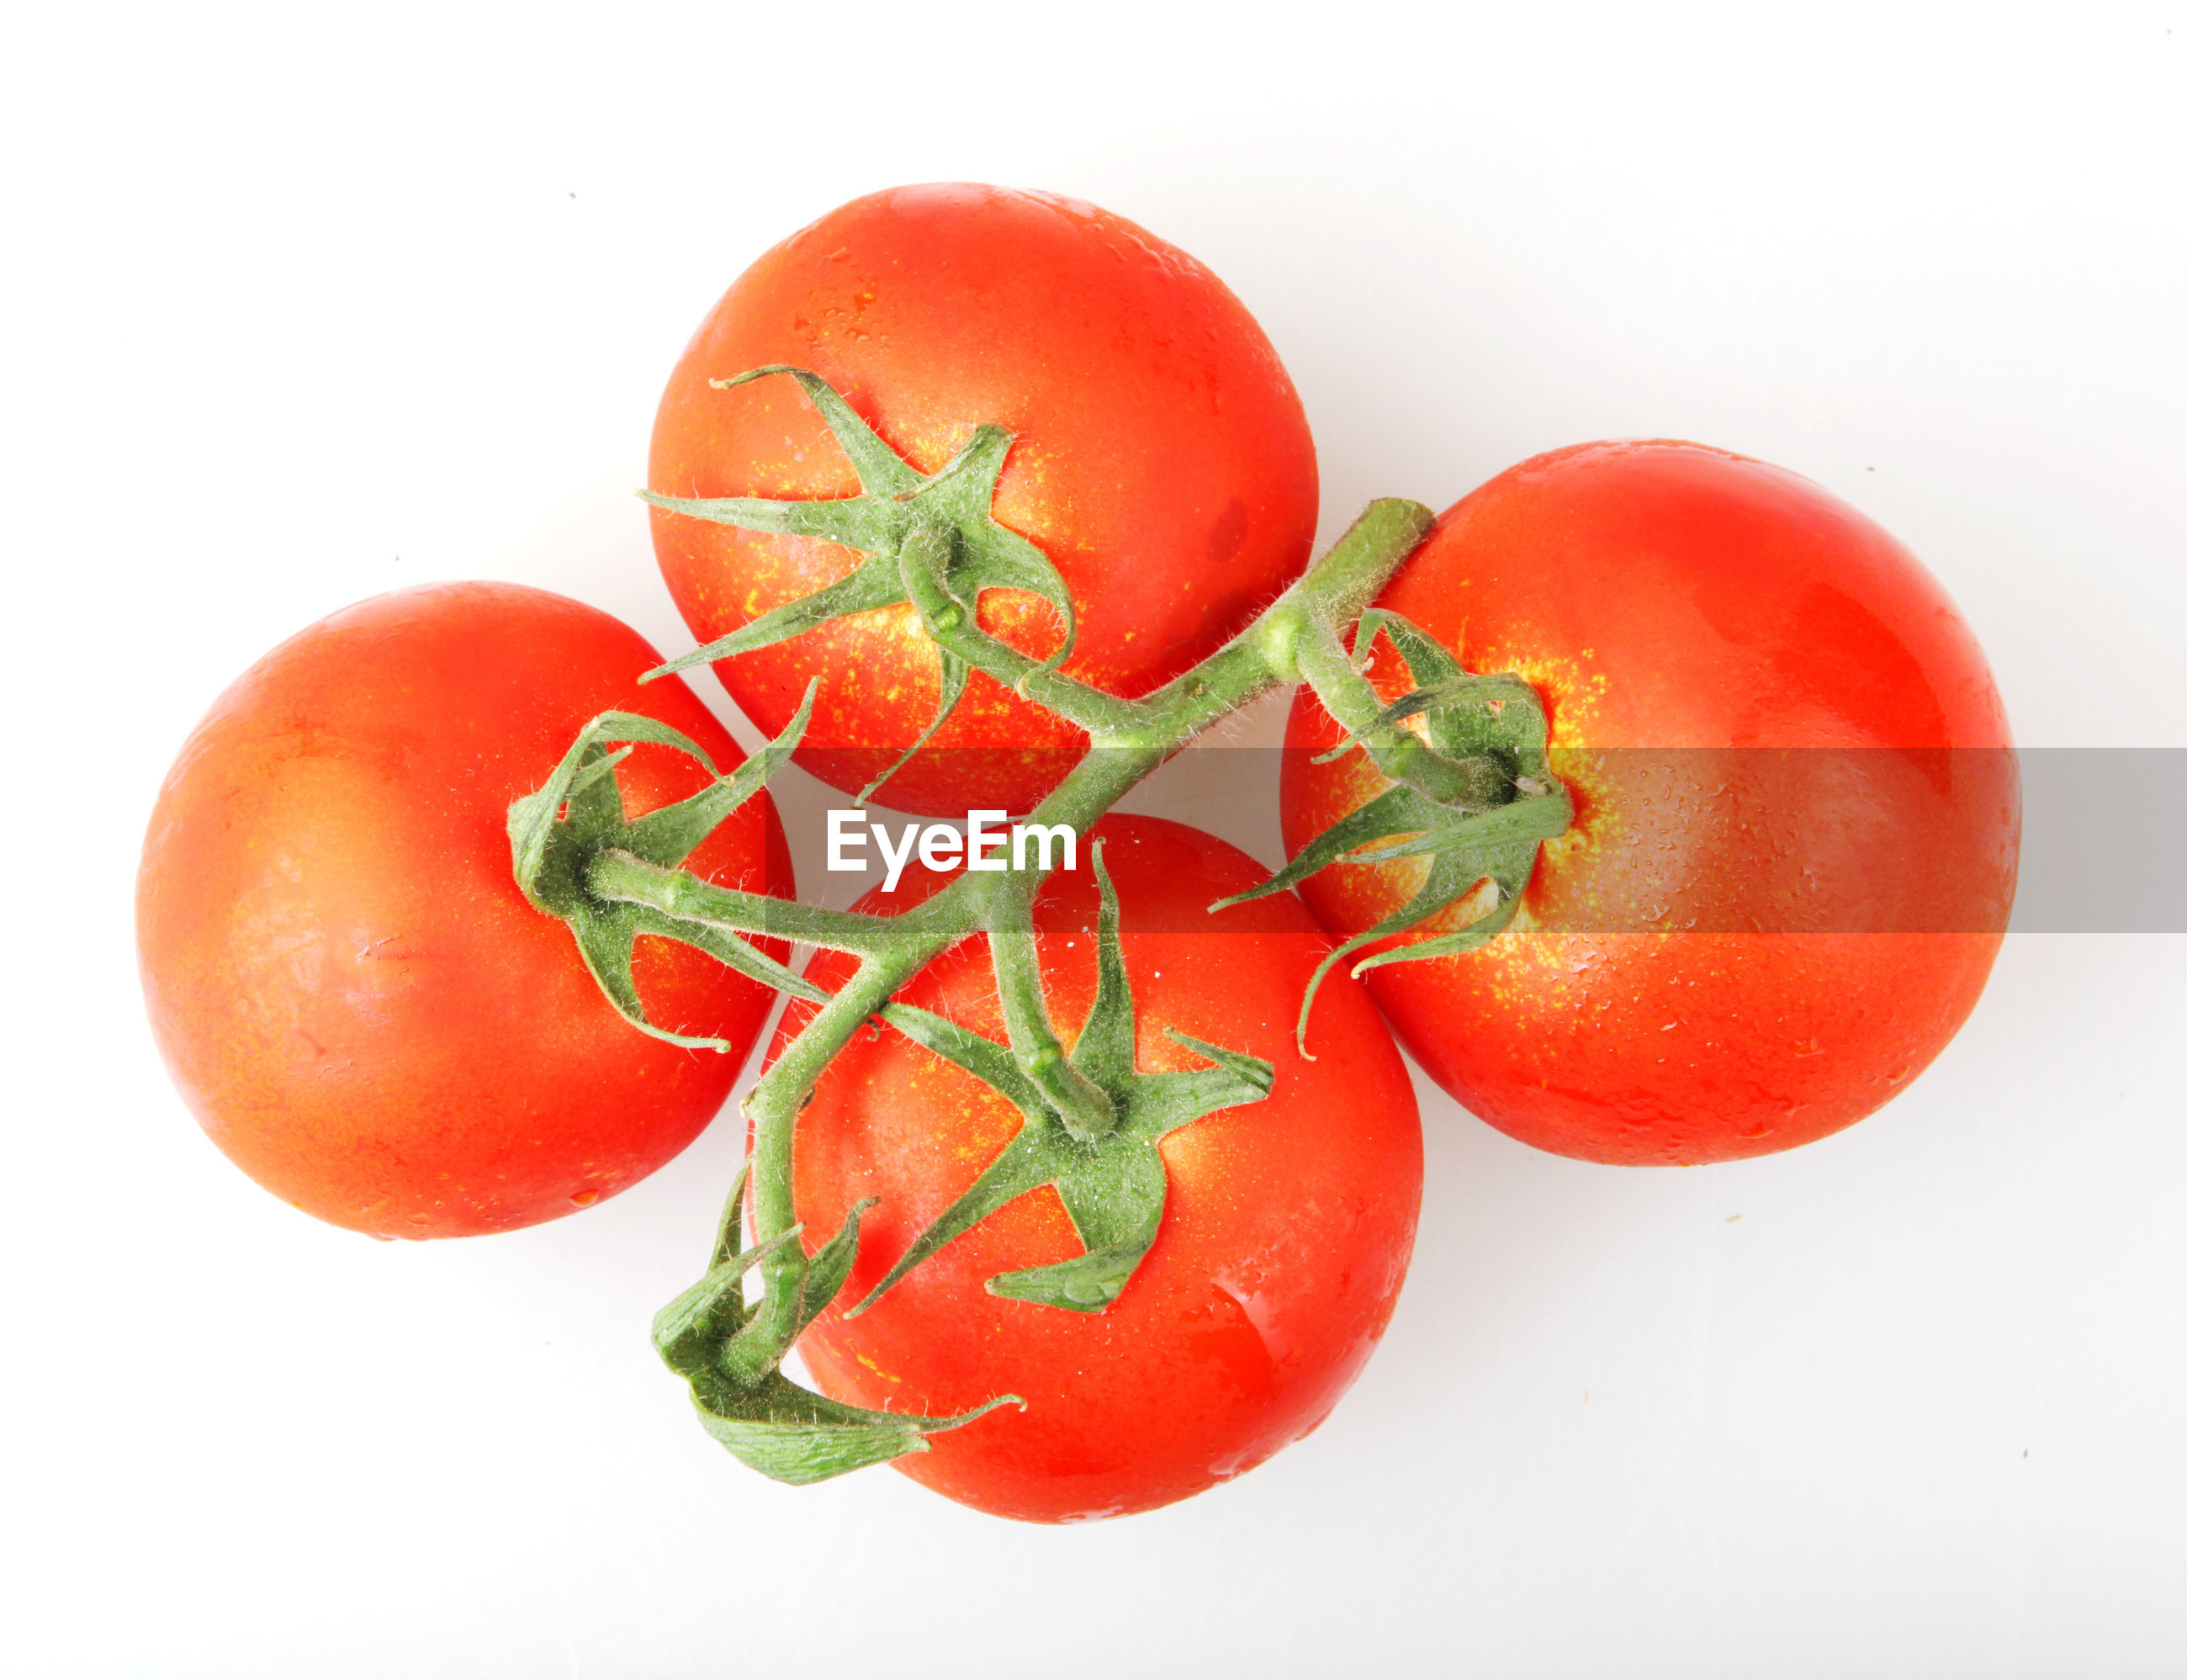 Close-up of red tomatoes on white background